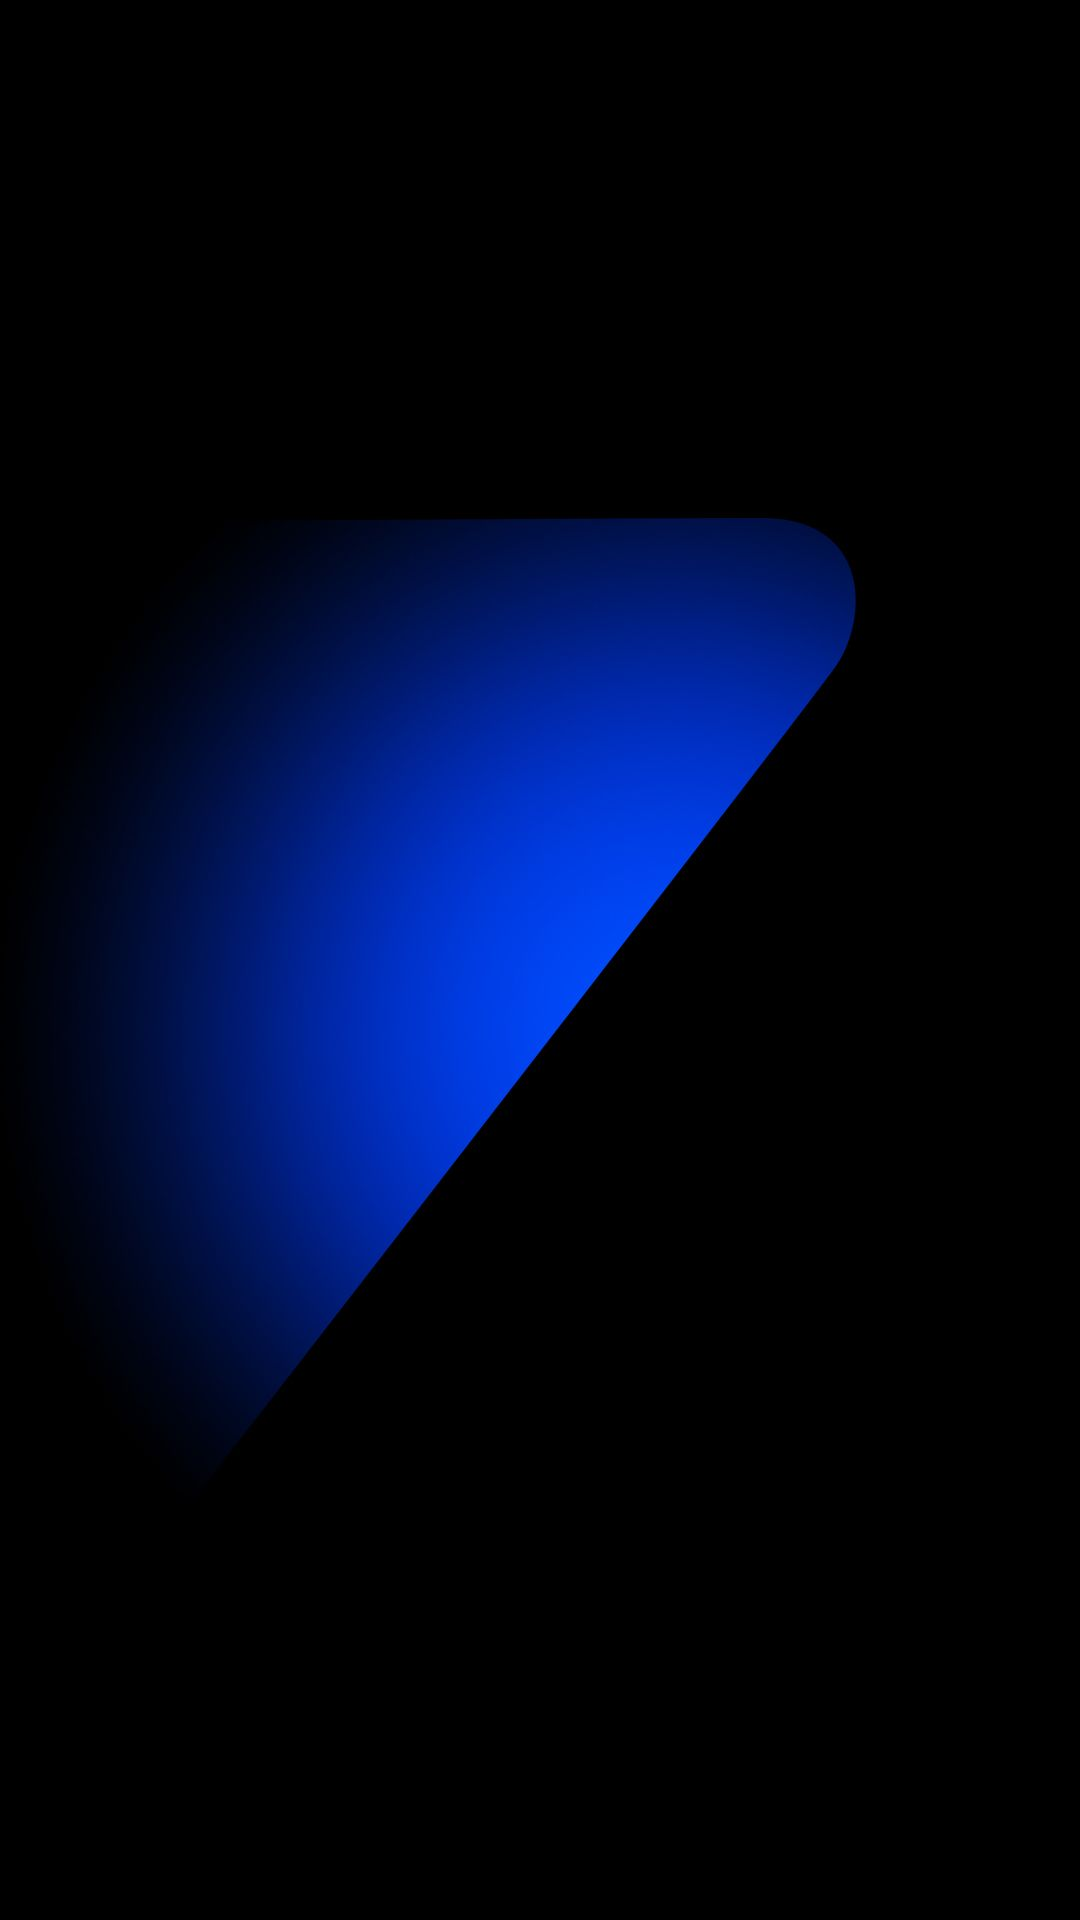 Samsung galaxy s7 edge screen wallpaper